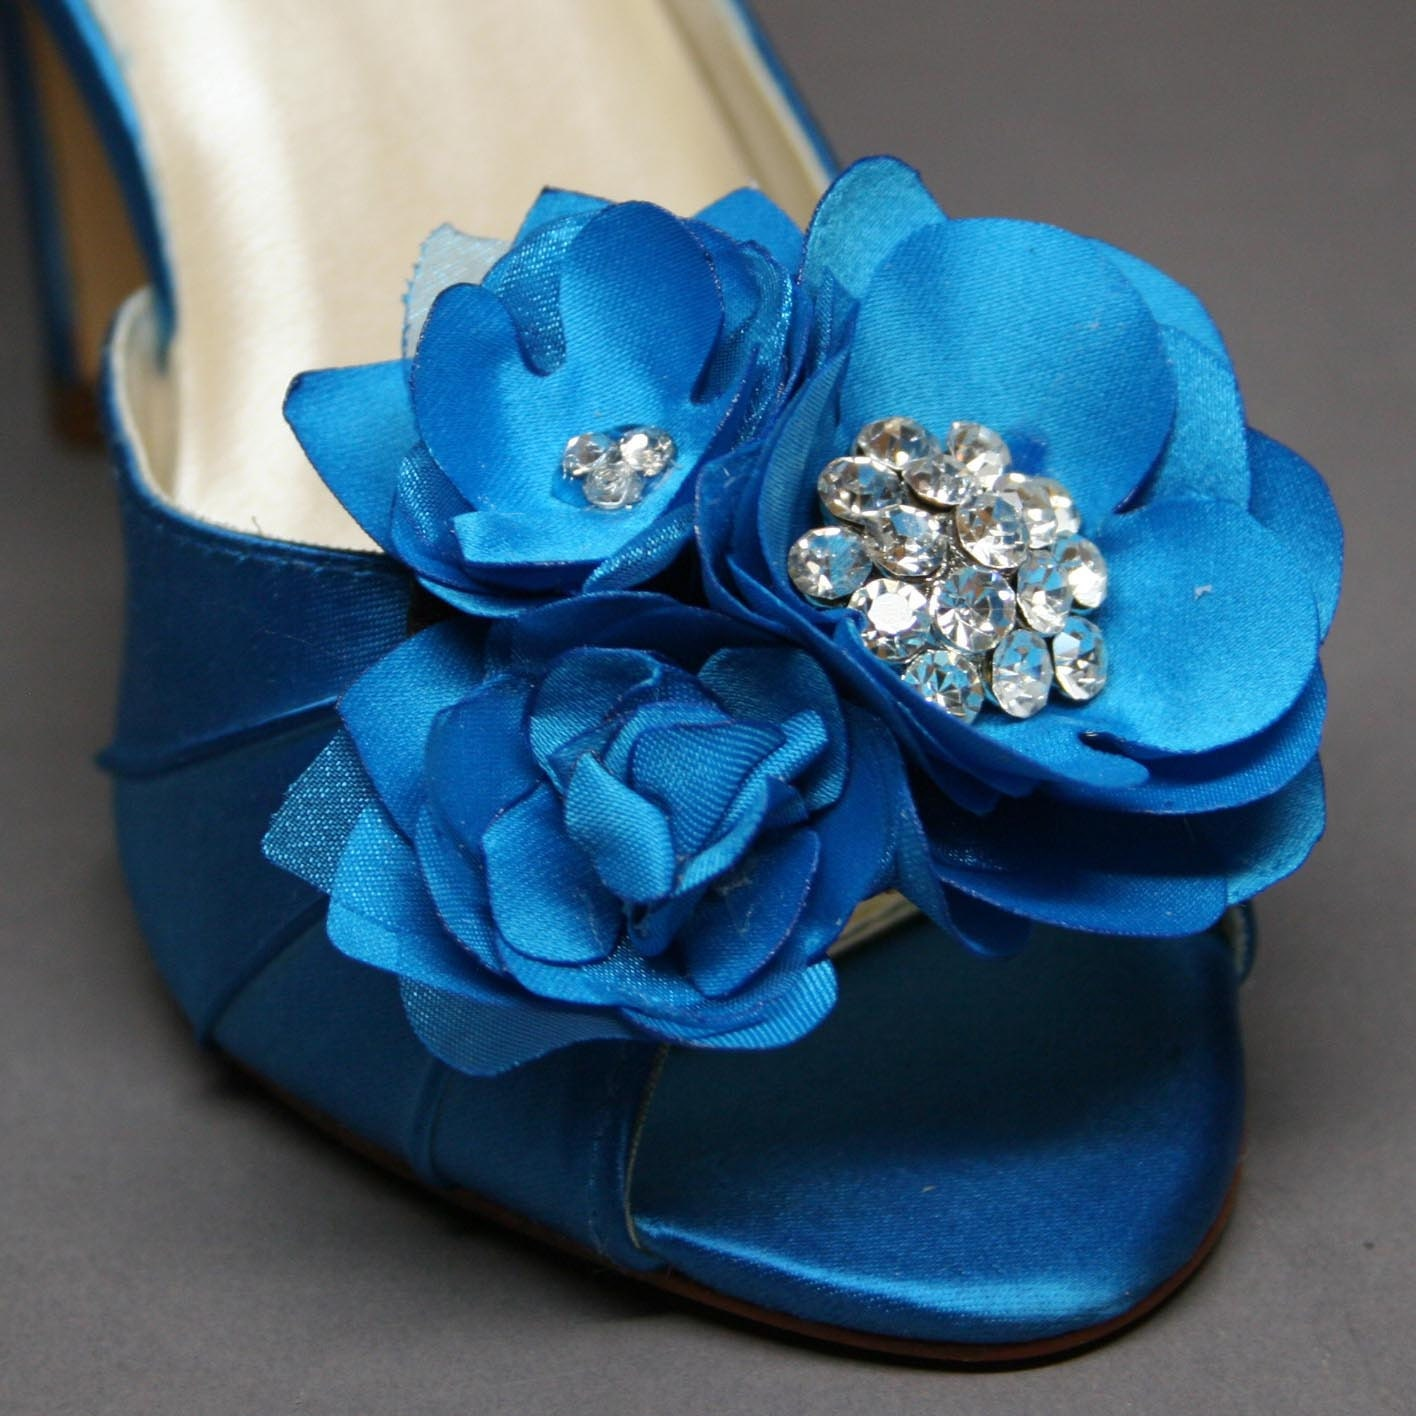 Turquoise Wedding Heels: SAMPLE SALE Blue Wedding Shoes Turquoise Peeptoe Heels With